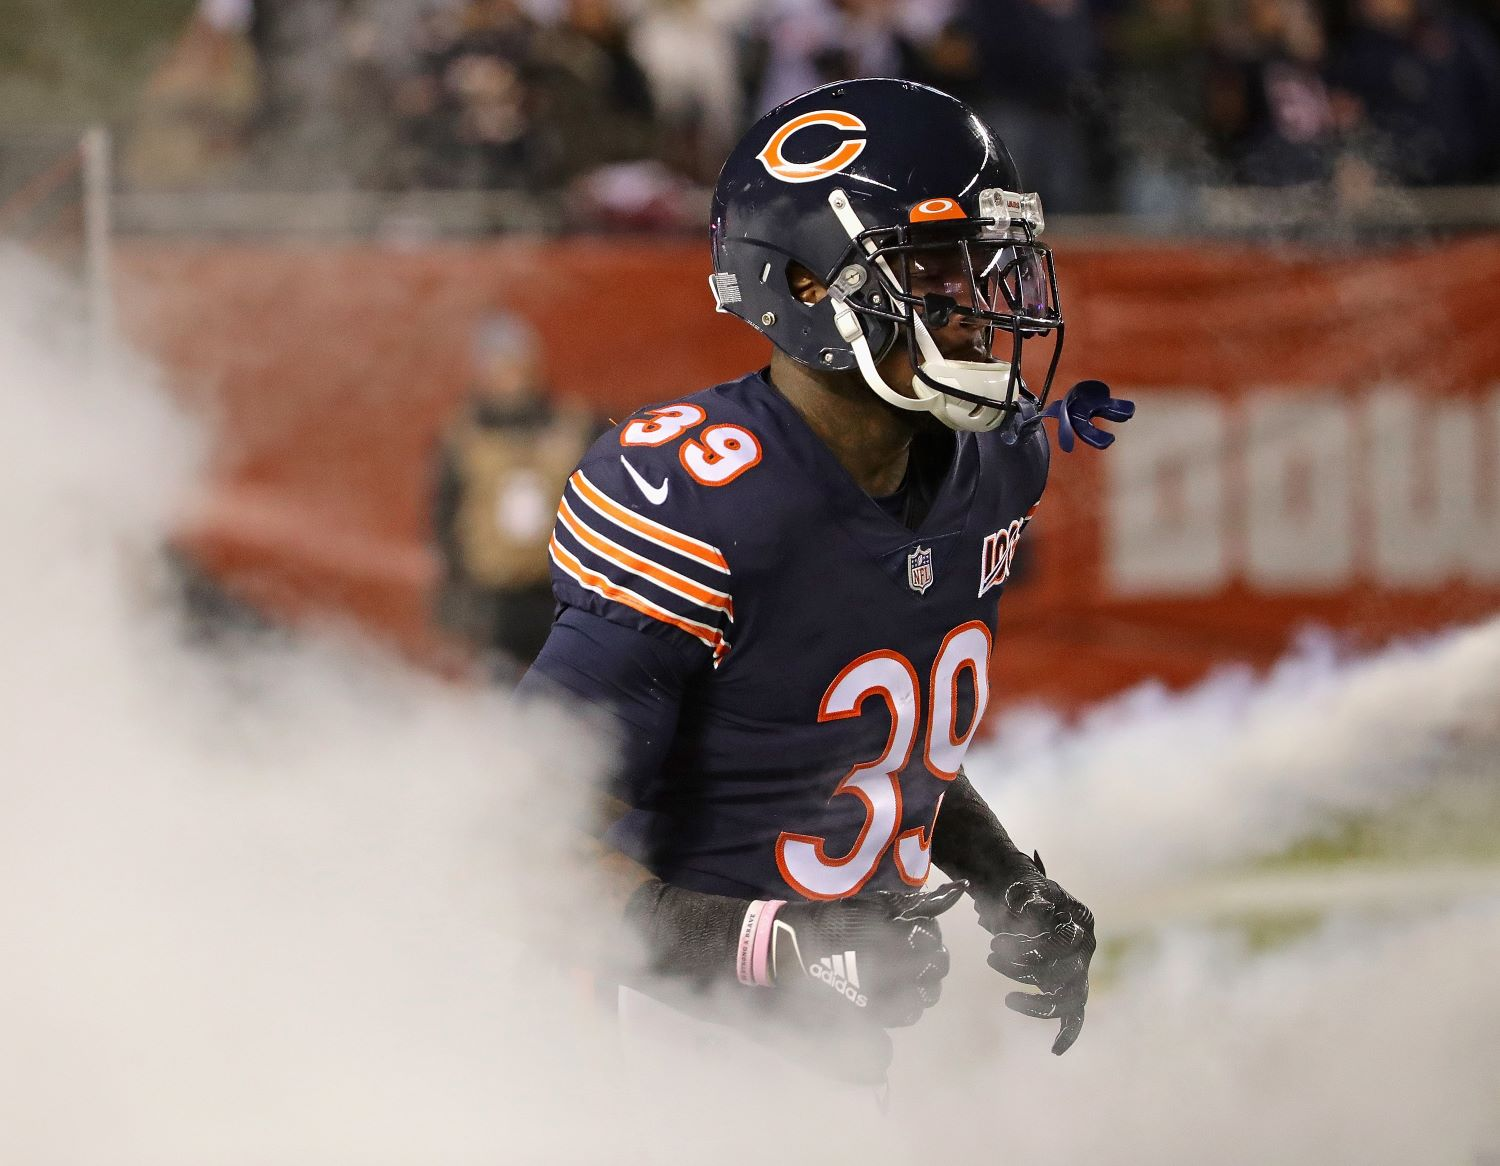 The Chicago Bears had to place star safety Eddie Jackson on the reserve/COVID-19 list on Monday.